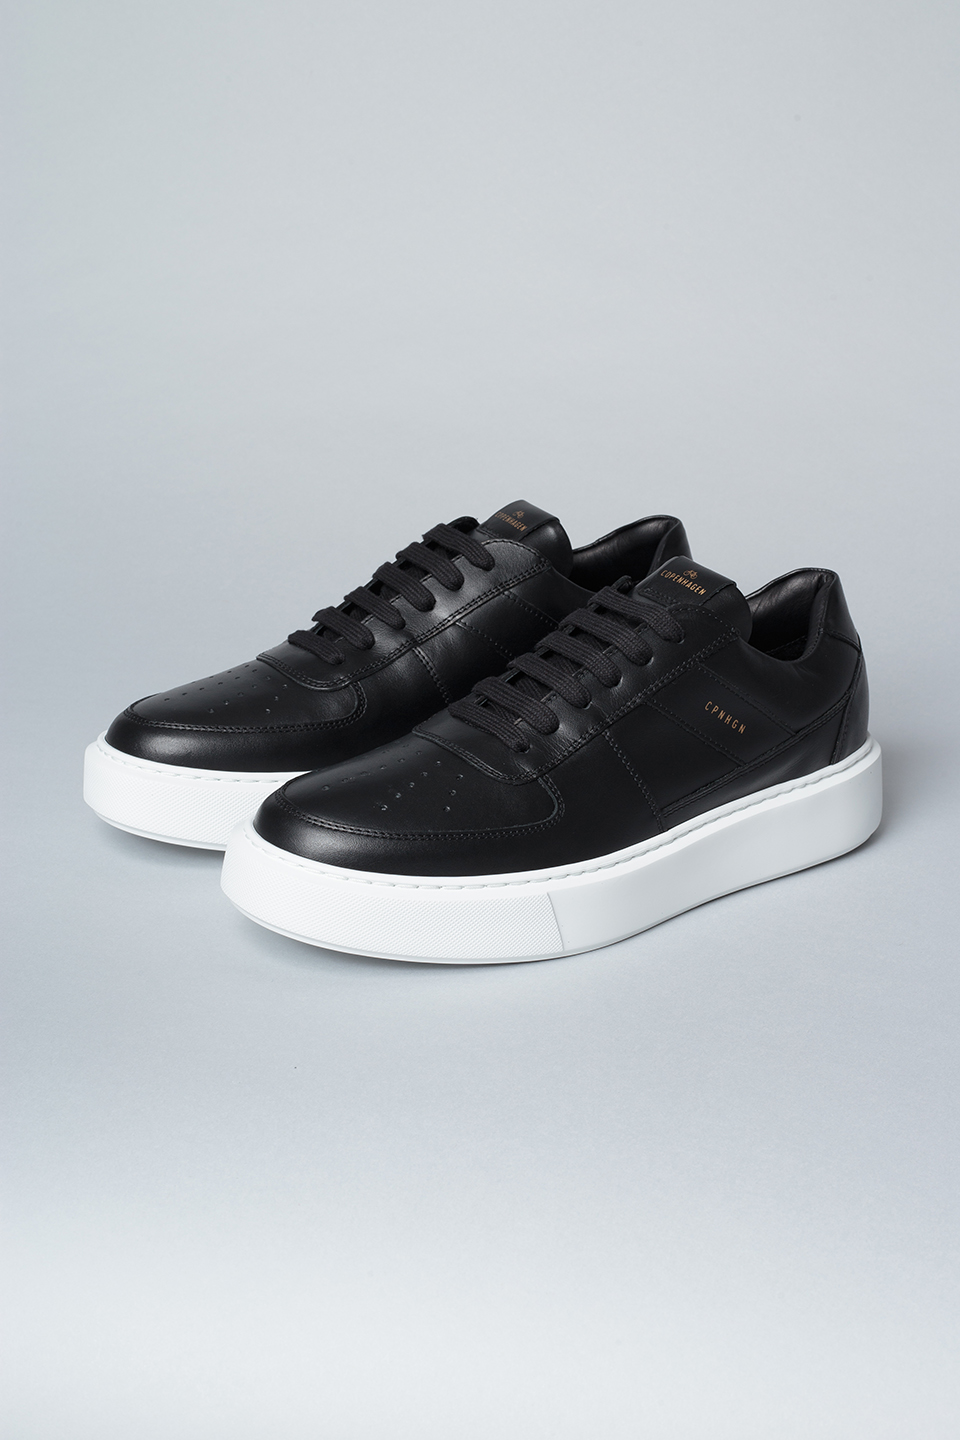 CPH152M vitello black - alternative 2